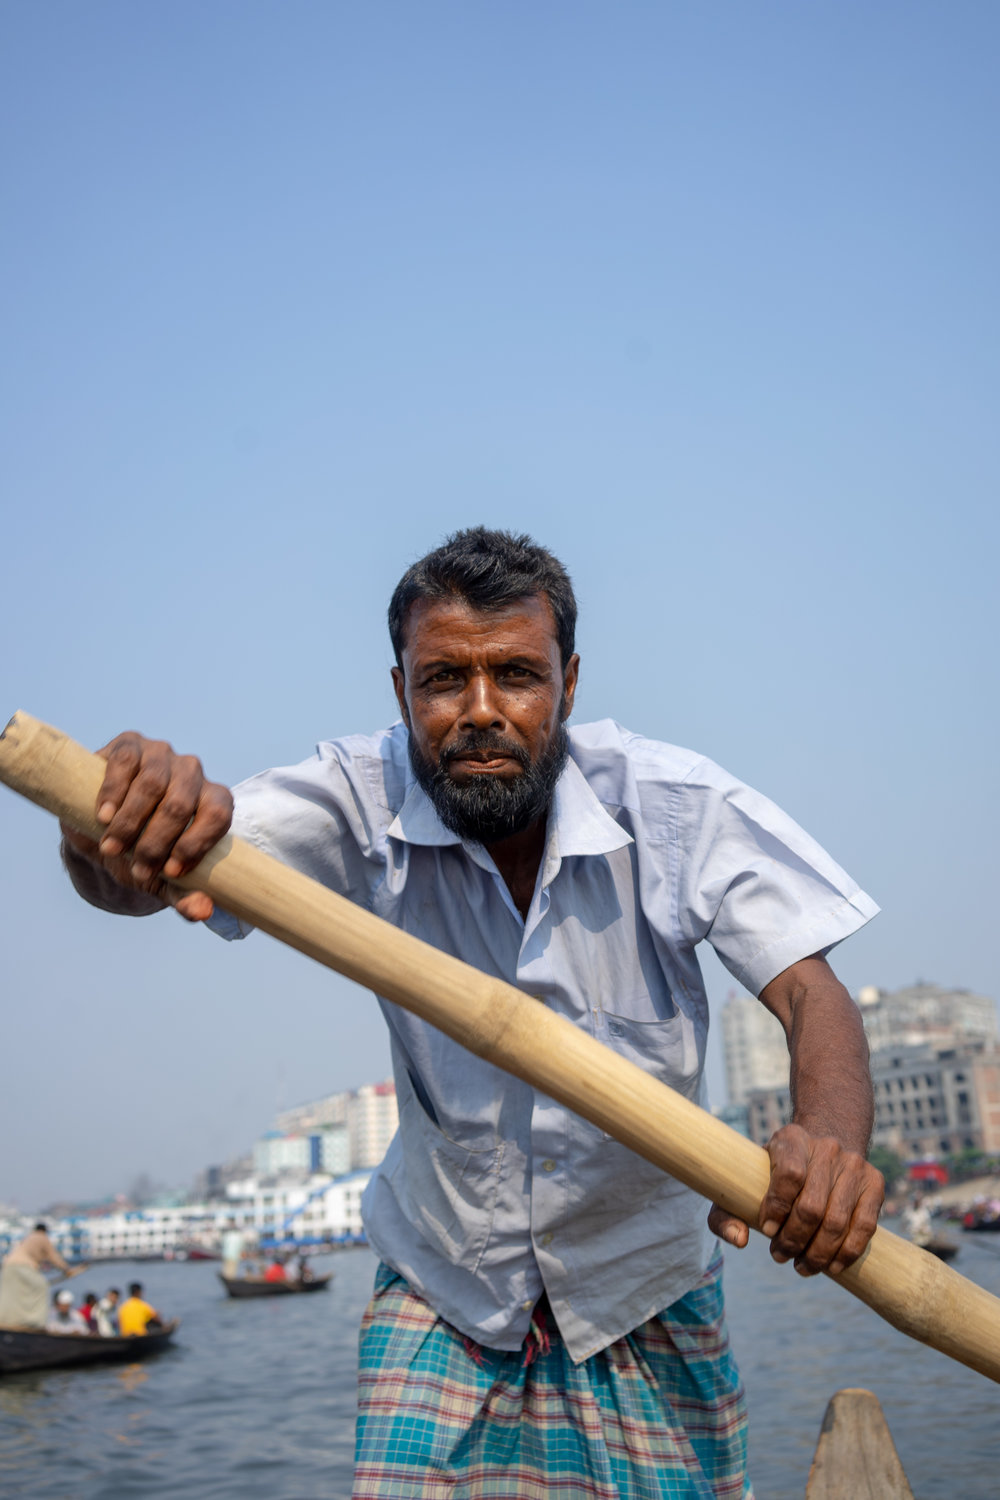 Sultan, from Barishal. He has been working on the boats in Dhaka for 20 years.